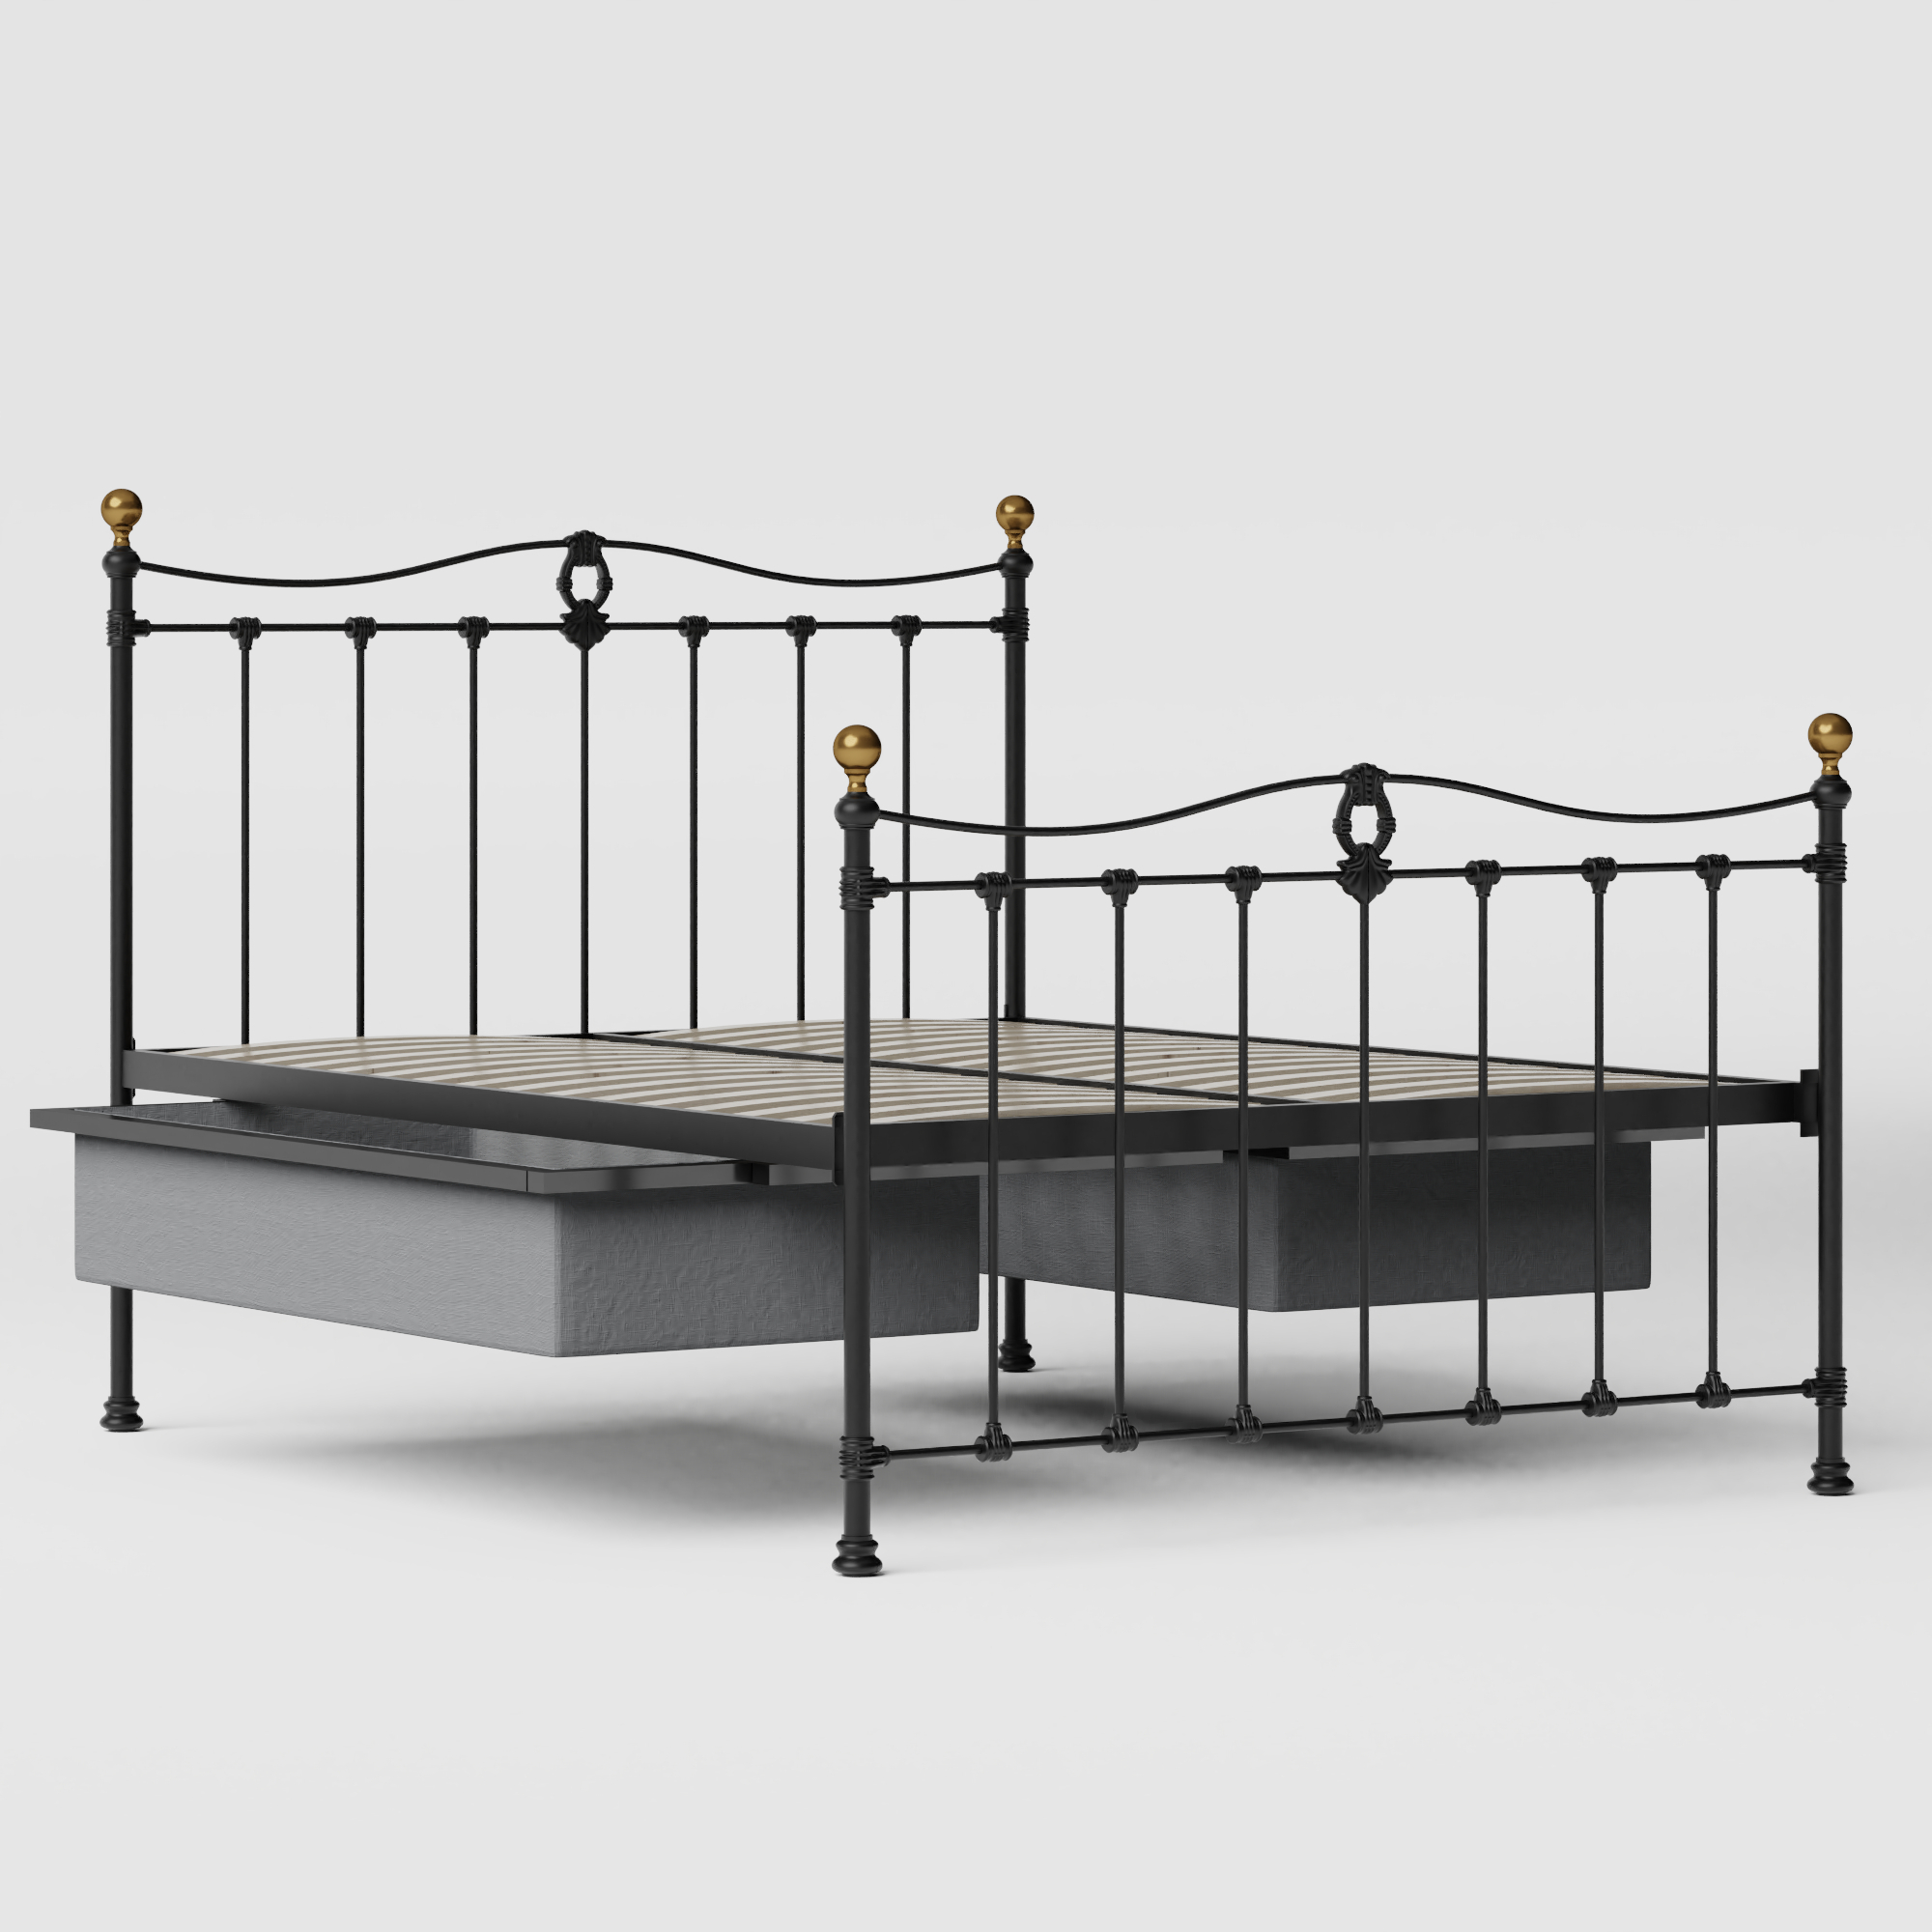 Tulsk iron/metal bed in black with drawers